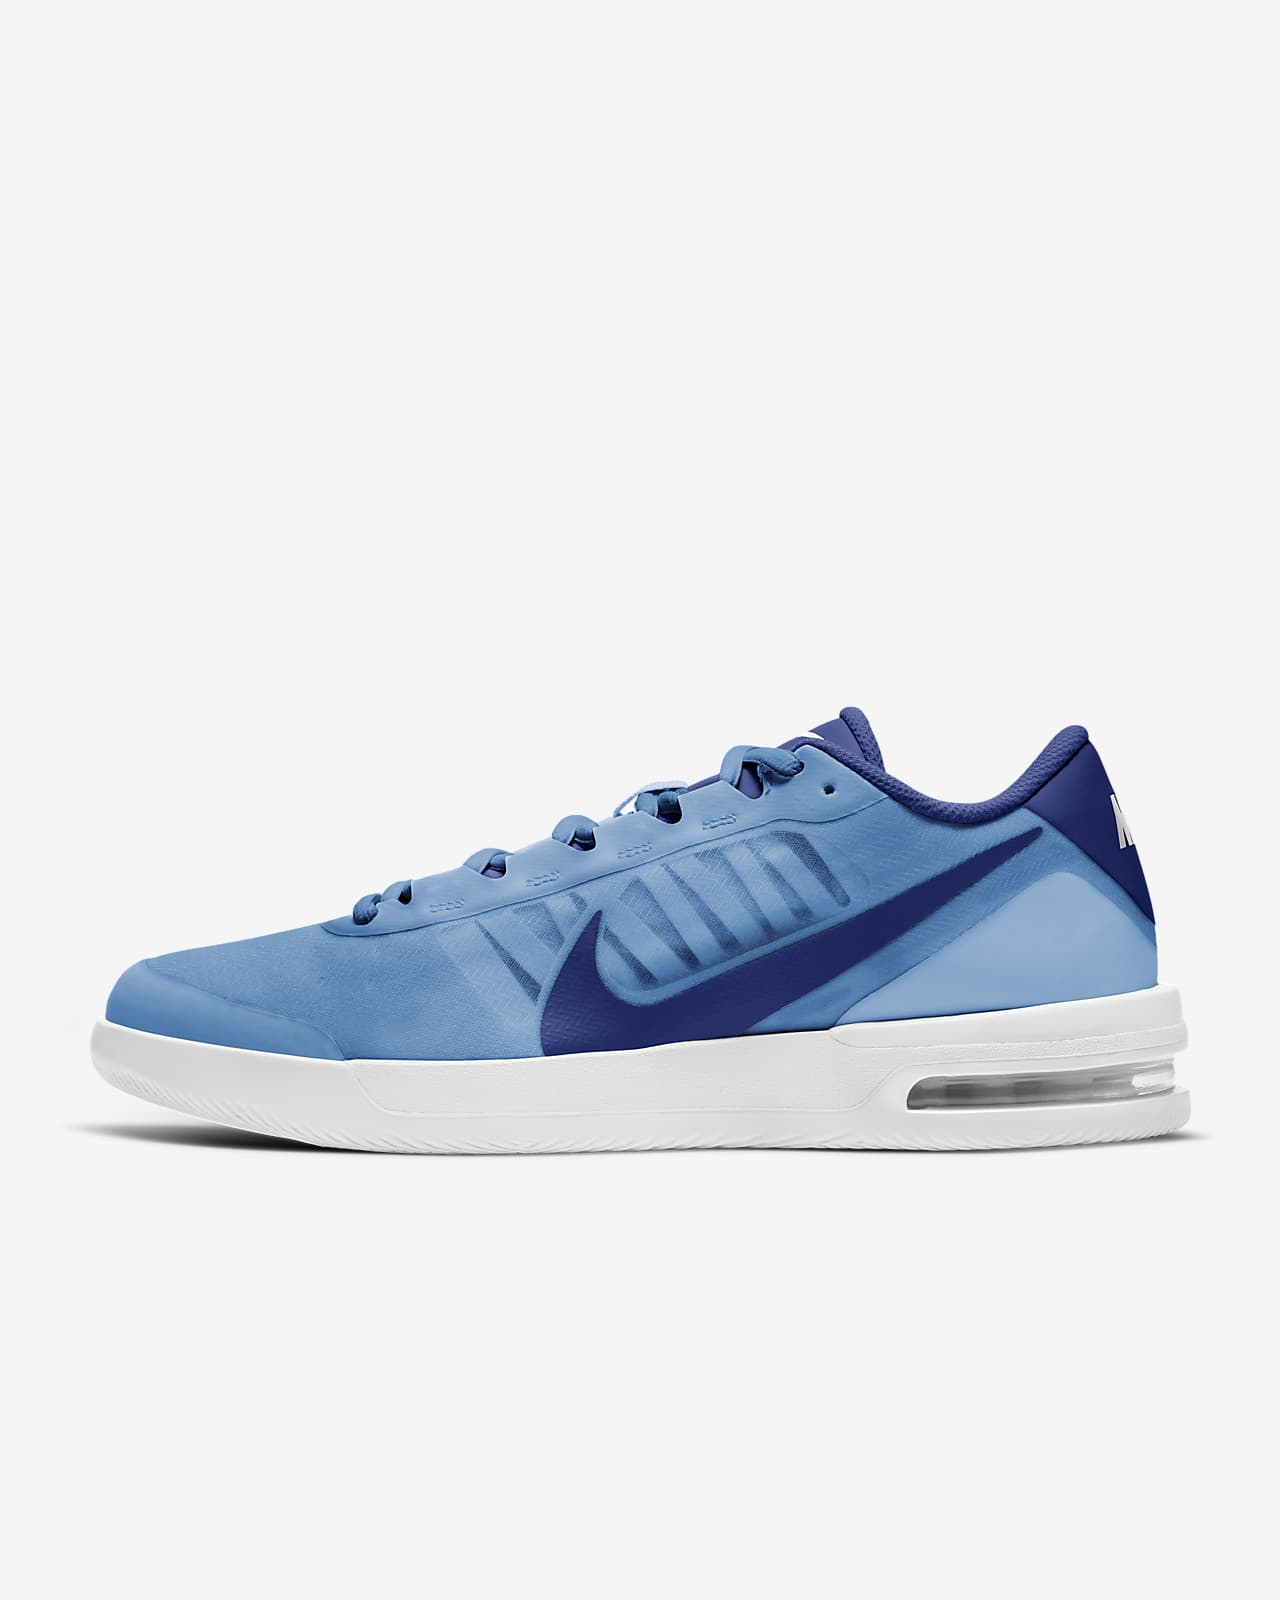 NikeCourt Air Max Vapor Wing MS Sabatilles de tennis per a diversos terrenys - Home